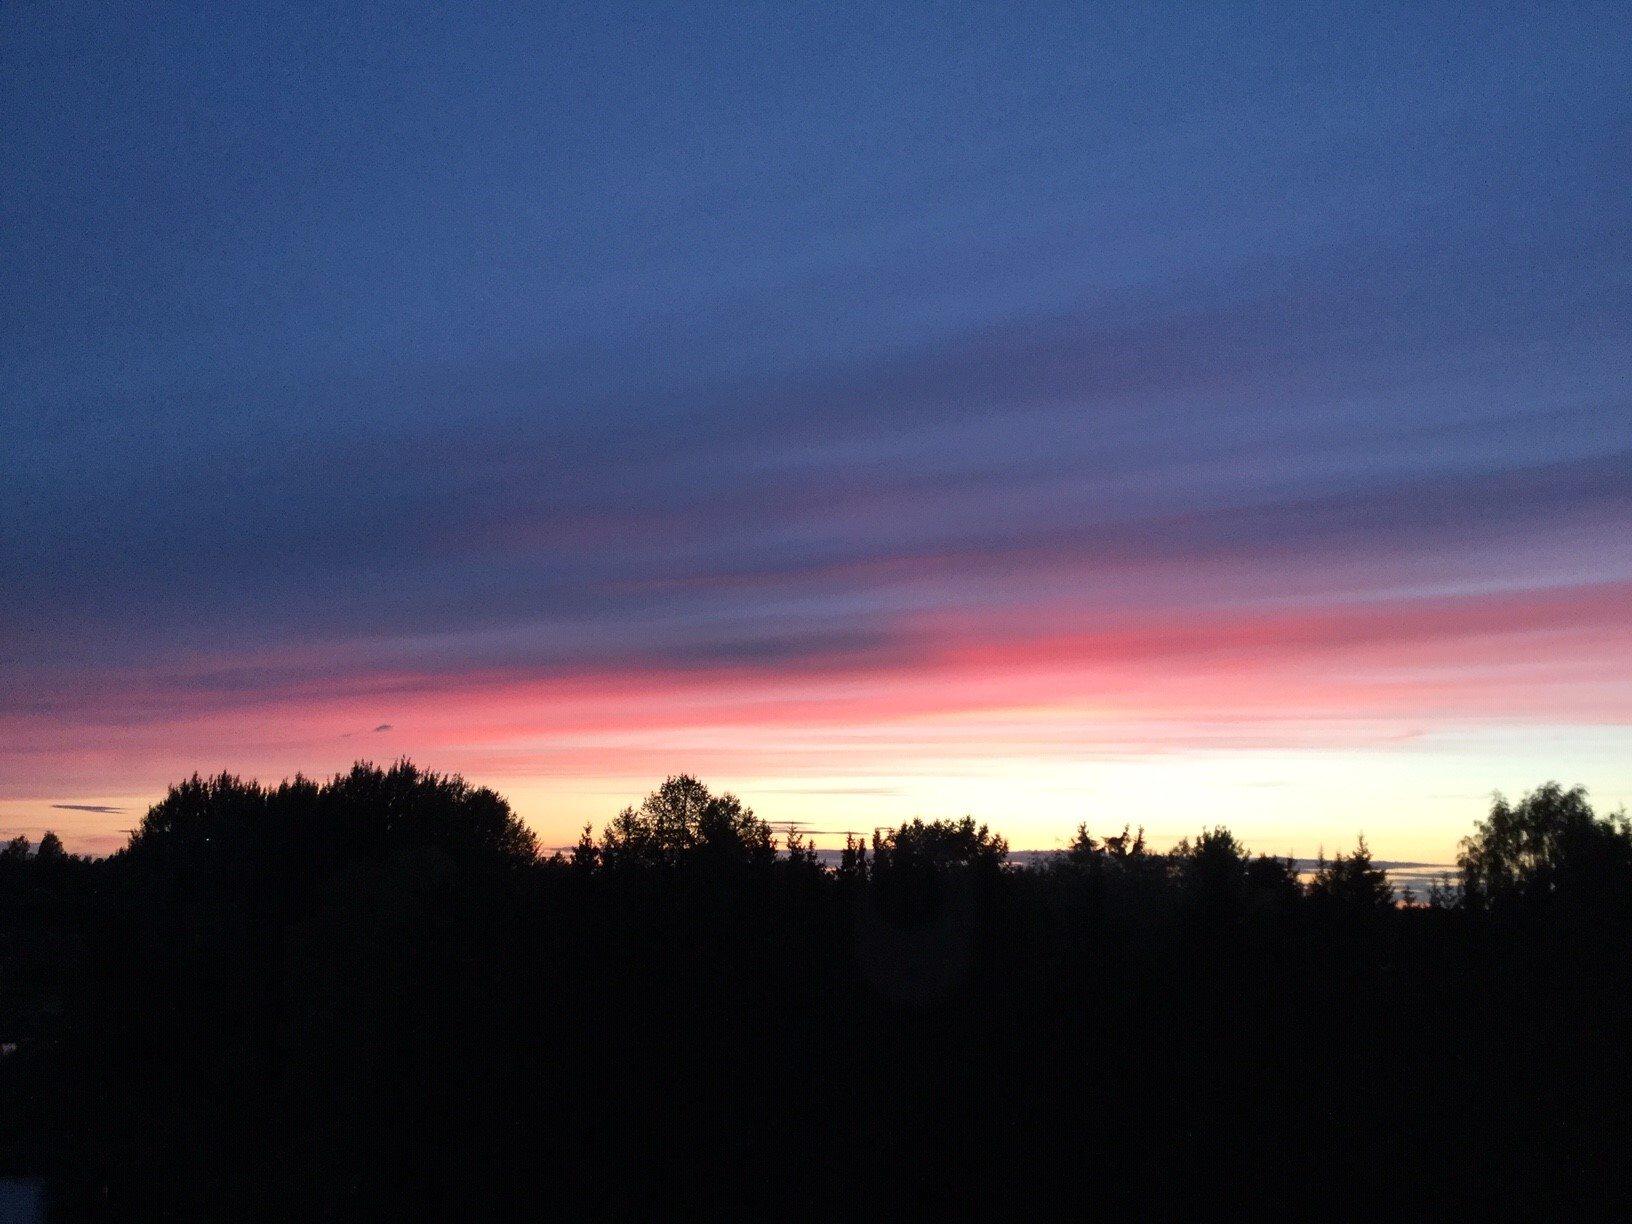 Finland! - Our volunteer Jenni, looking out her hotel balcony at the midnight sun!We miss you Jenni, but wow! Gorgeous!